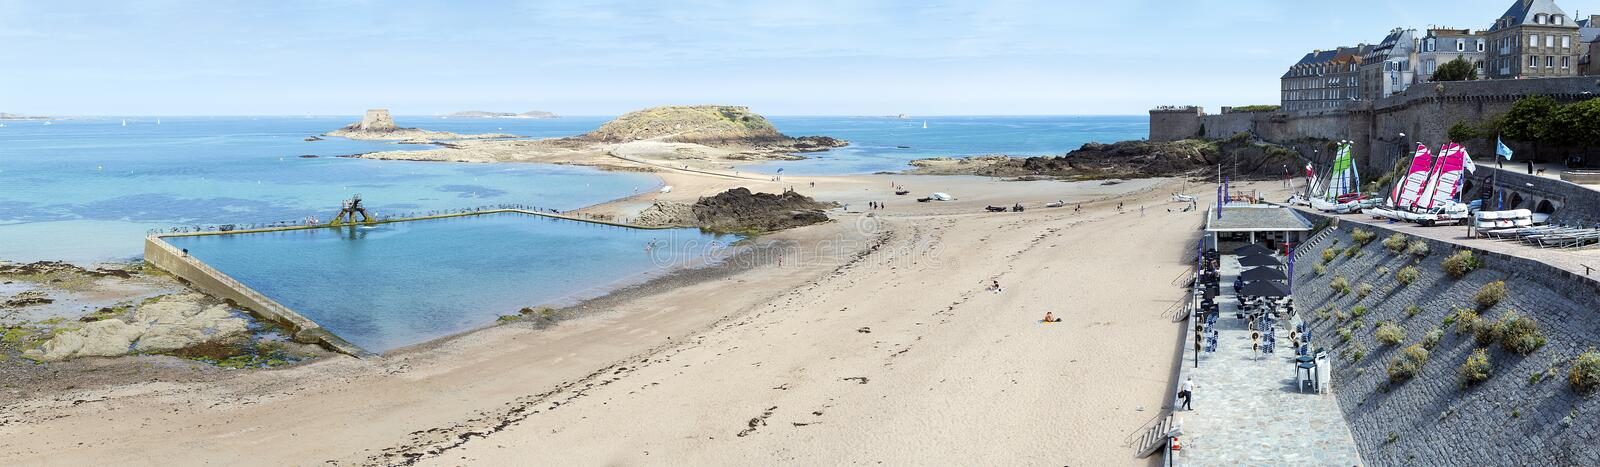 Panoramic view of Bon Secours Beach in Saint-Malo stock image